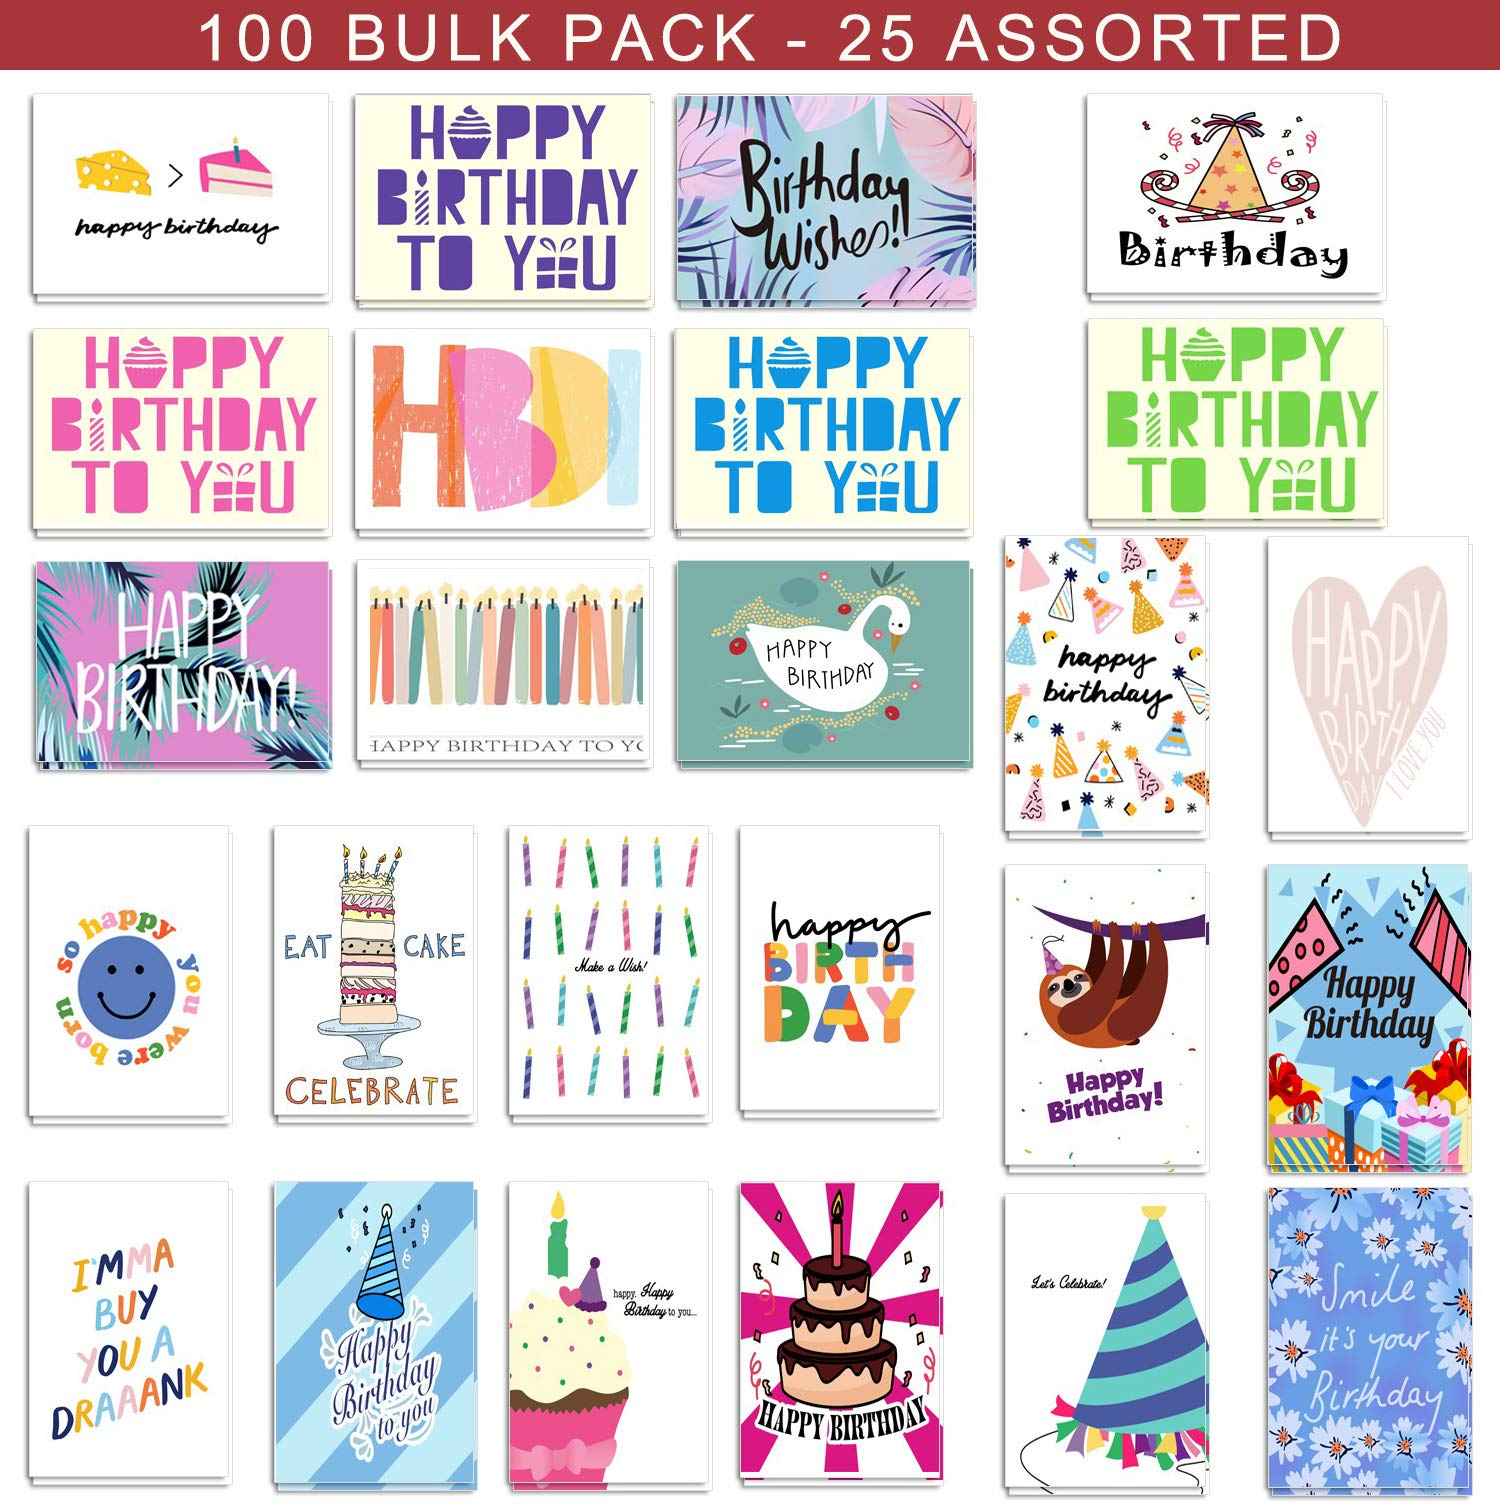 100 Birthday Cards Bulk 25 Assorted Happy Birthday Cards, Birthday Greeting Cards Box Set with Envelopes and Seals, 4 x 6 inches Blank on the Inside by SUPHOUSE